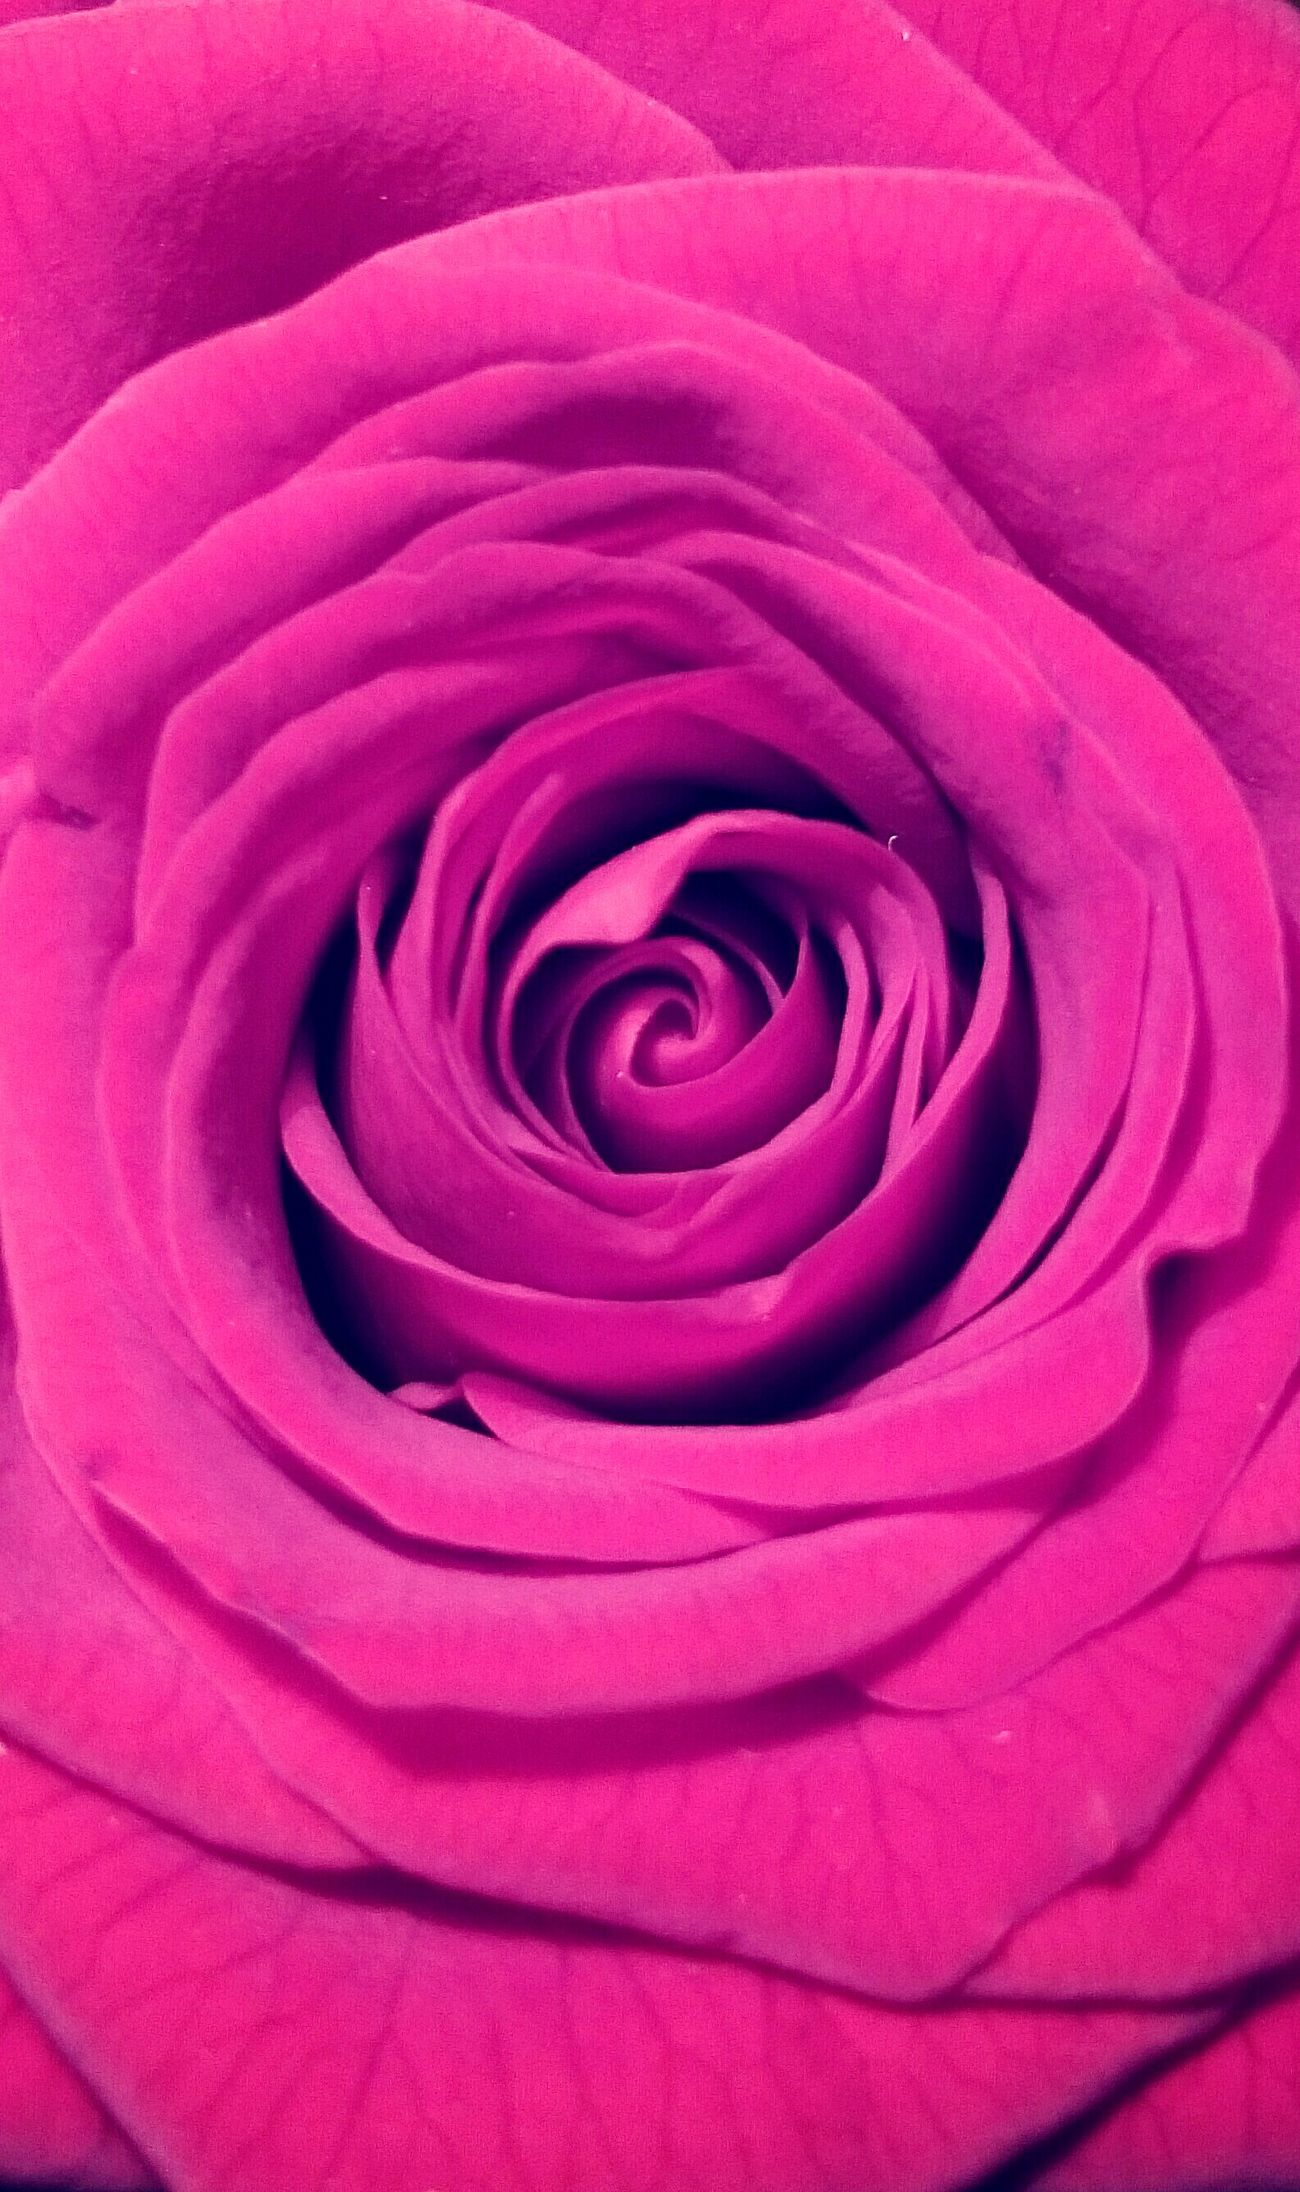 Violet By Motorola Rosé Rose🌹 Purple Violet Flowerporn Flower Flowers Heart Heartflowers Beautiful rose